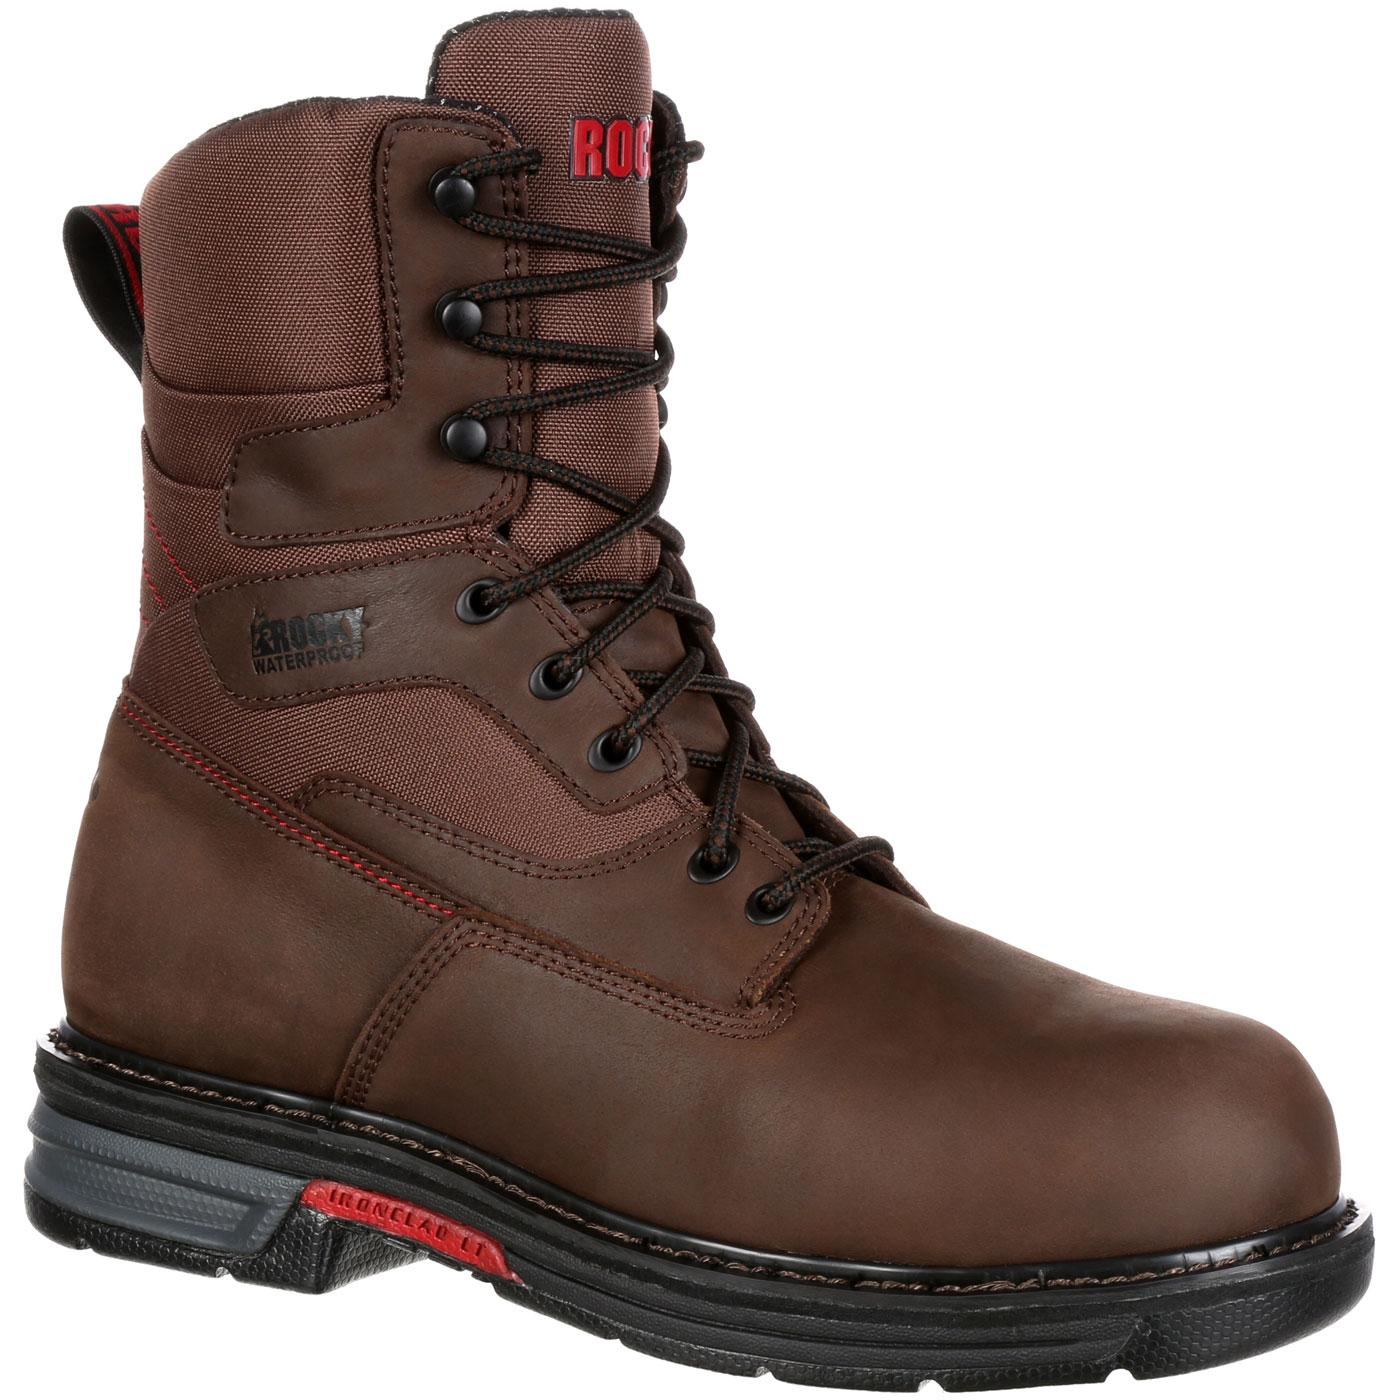 Rocky Iron Clad Work Boots | Find Rocky IronClad Boots